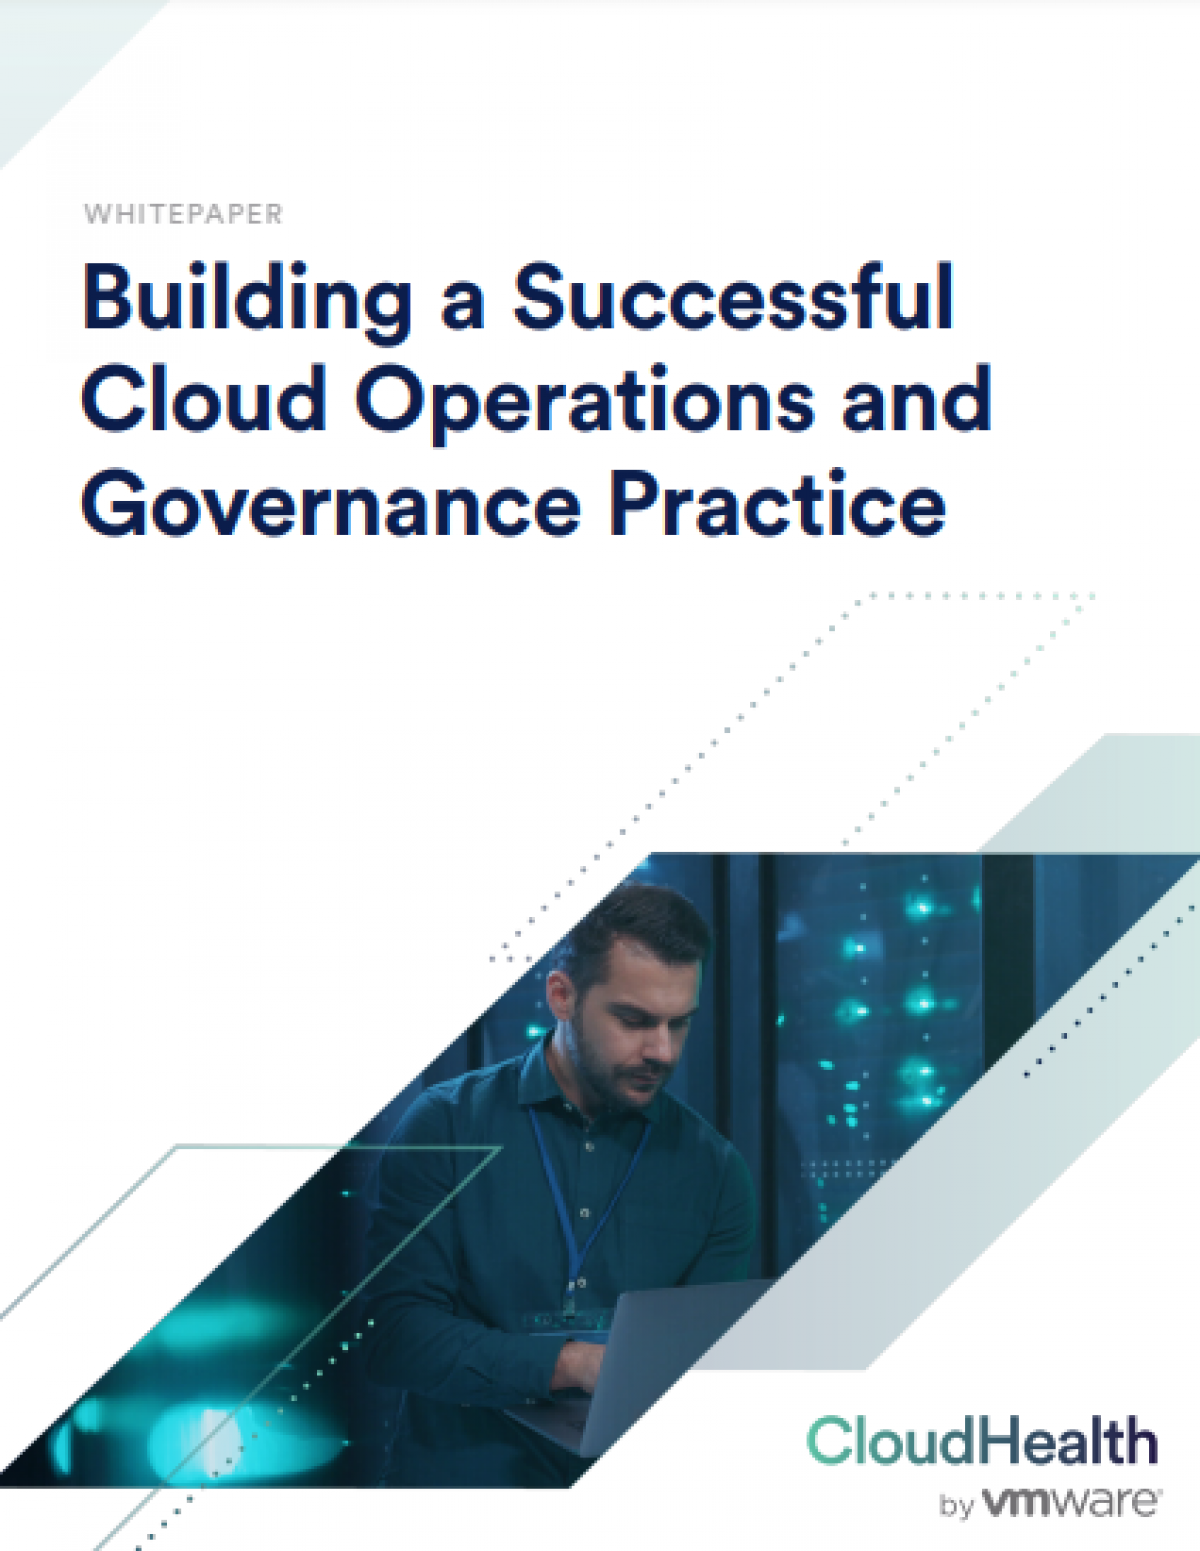 building-a-successful-cloud-operations-and-governance-practice